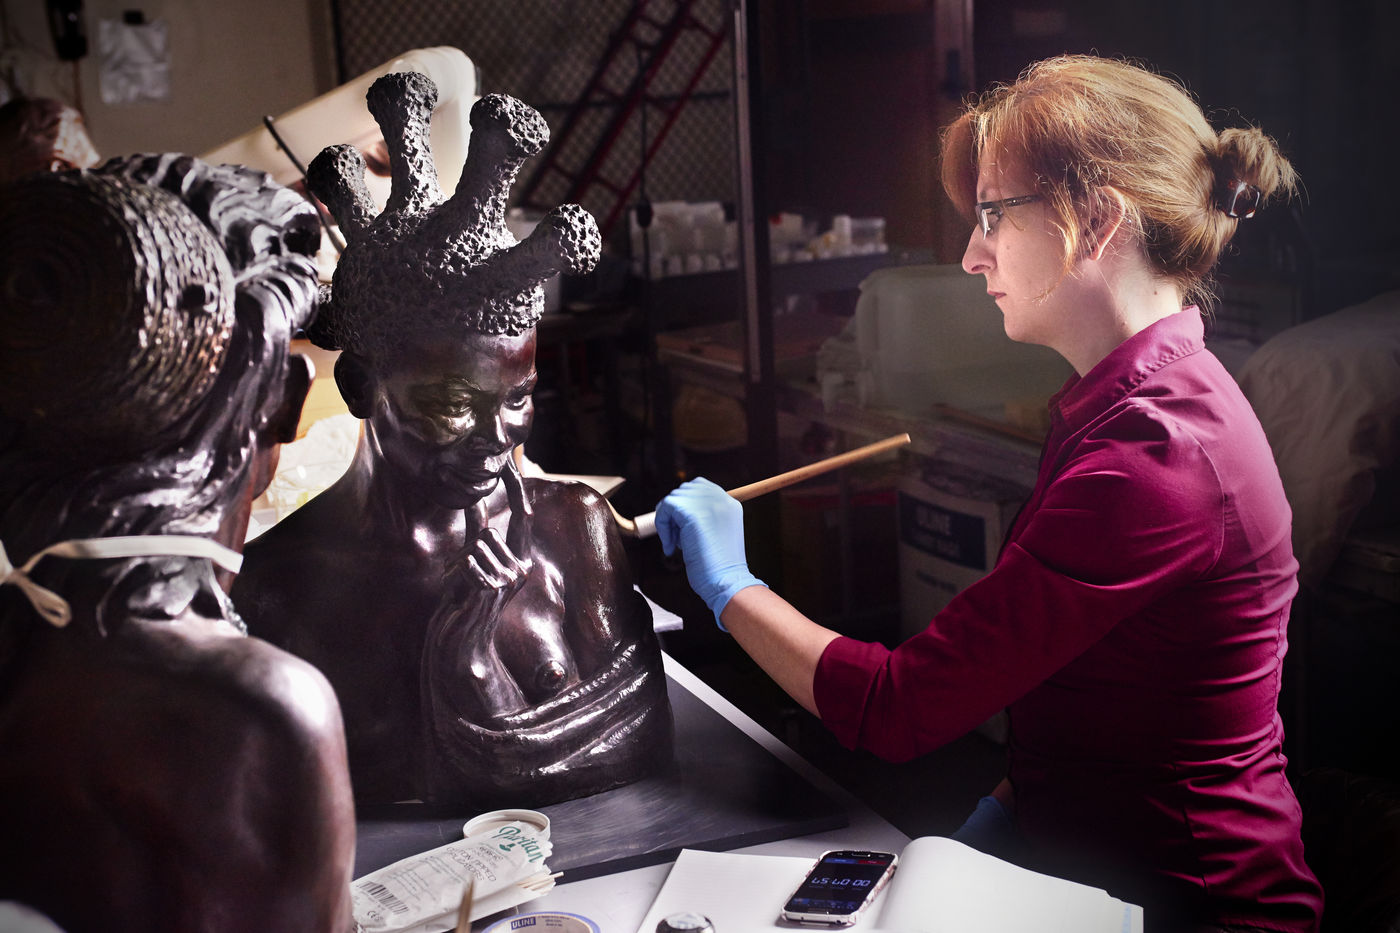 A conservator uses a brush to treat a bronze bust created by Malvina Hoffman. The back of another bust is visible in the foreground.